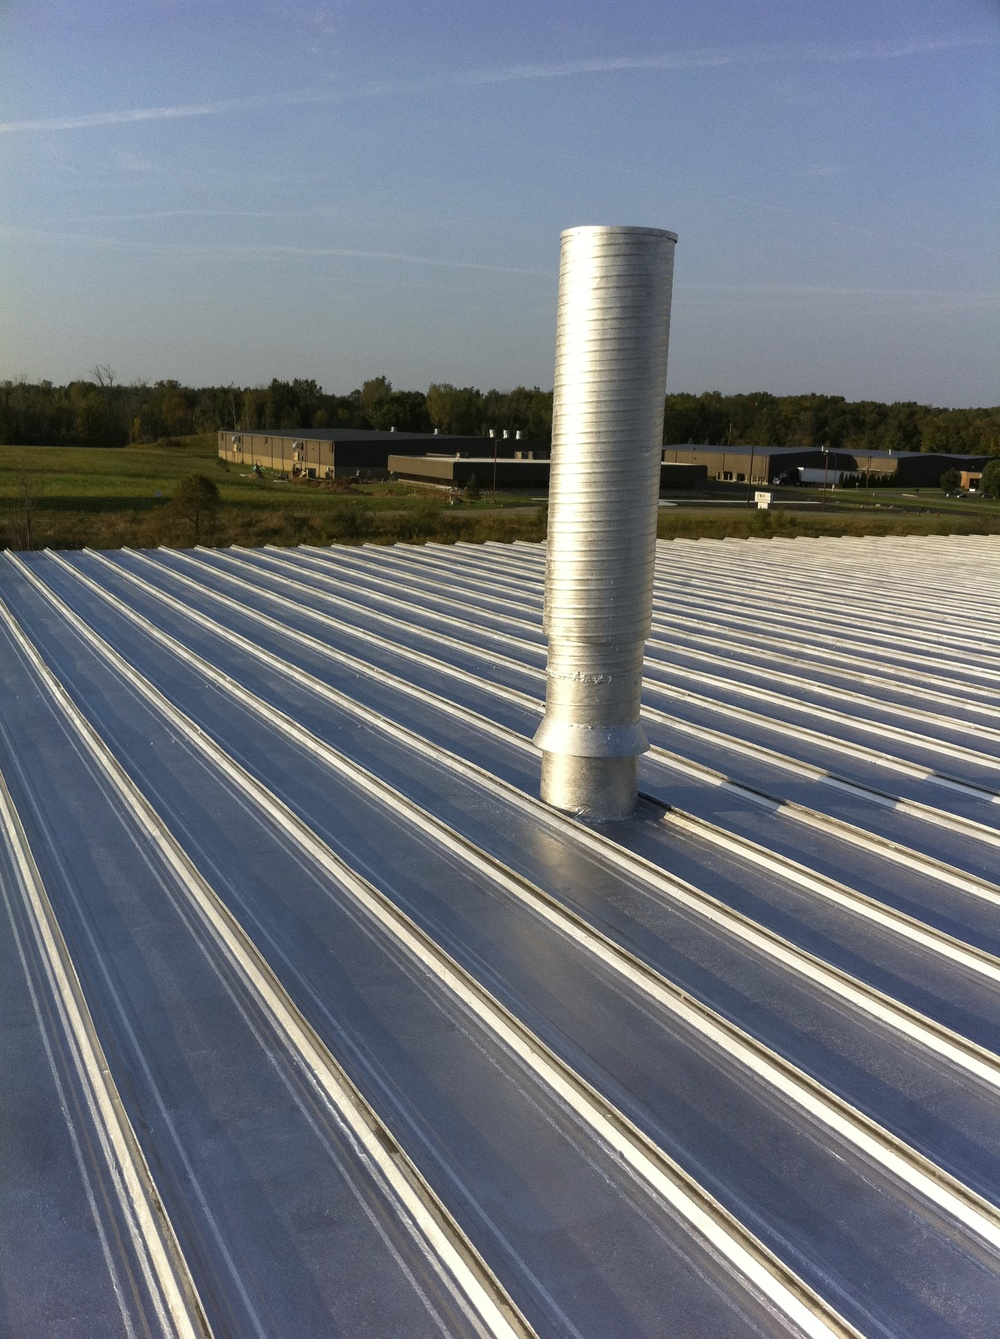 Aluminum Metal Roof Coating For This Standing Seam Metal Roof. Prior To The  Sealing And